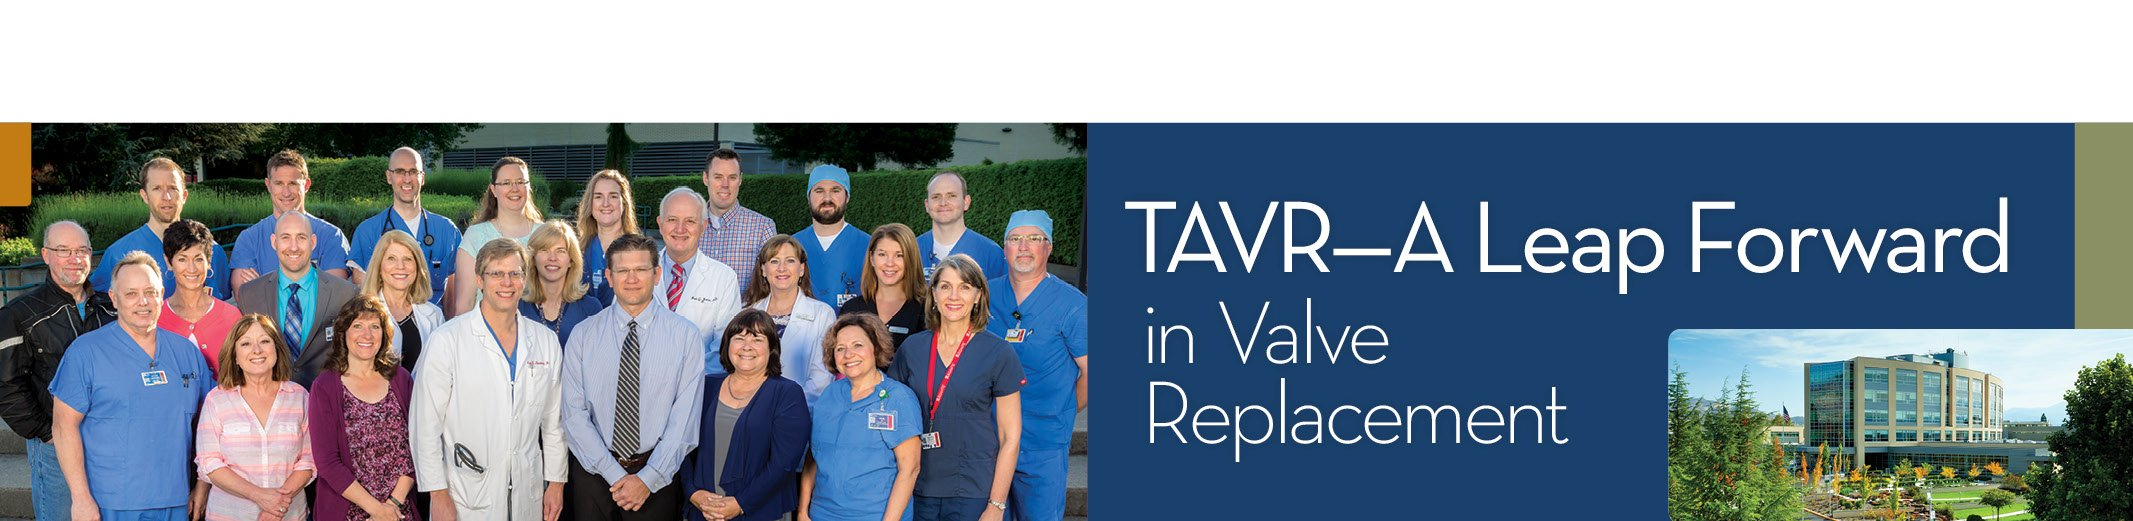 TAVR - Transaortic Valve Replacement at Asante Rogue Regional Medical Center